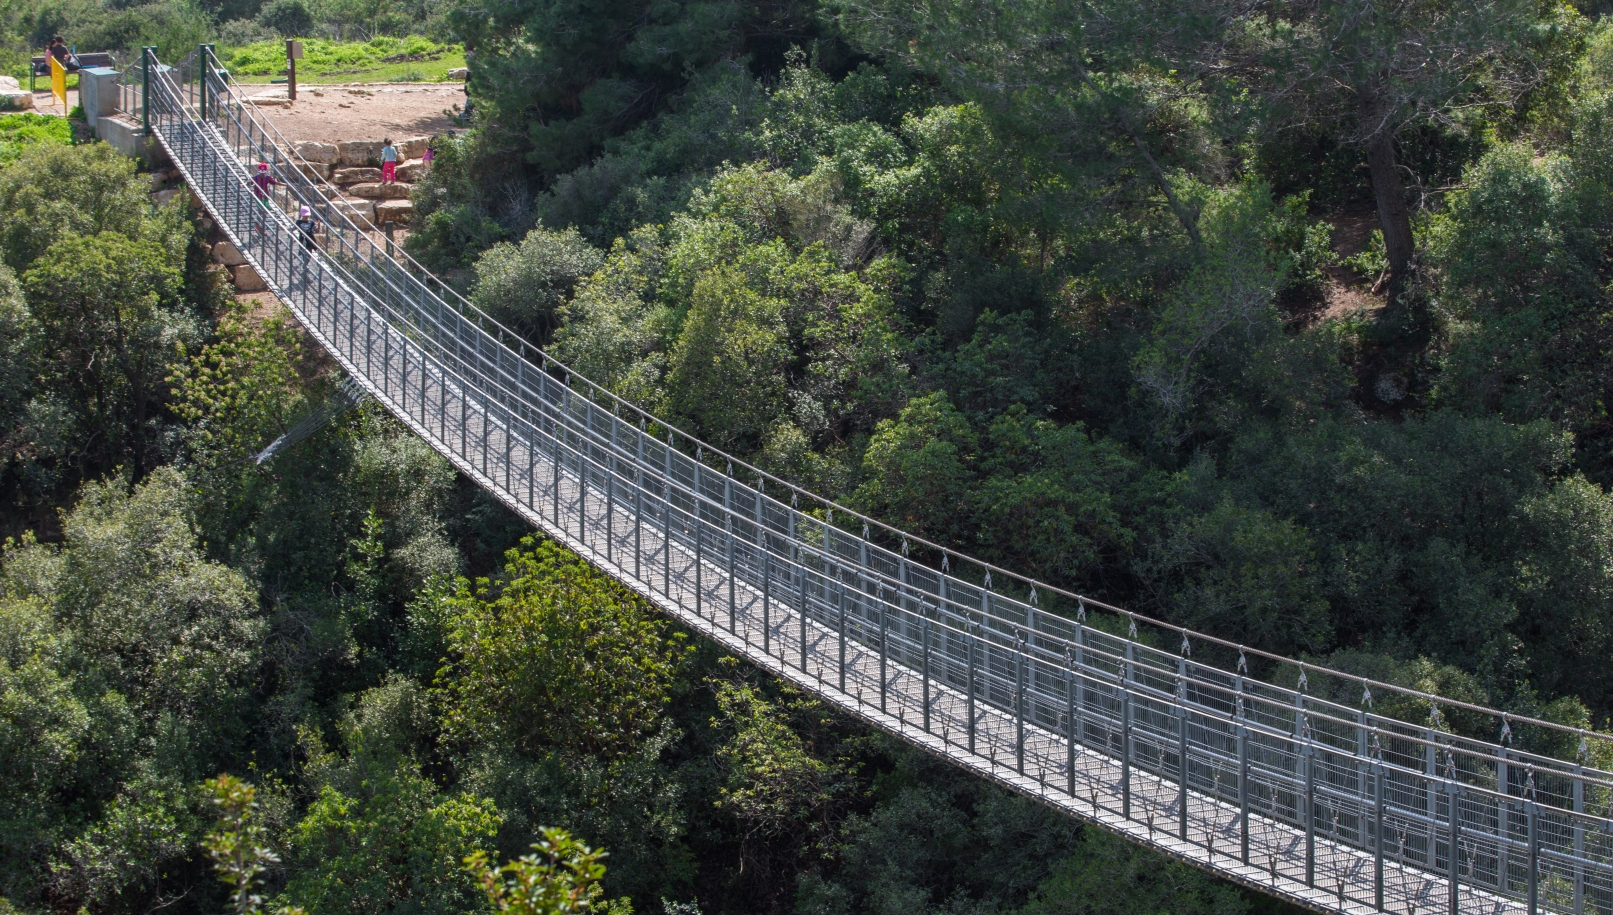 Suspension bridge in Nesher Park, just outside Haifa. Image by Roni Ben Ishay via Shutterstock.com